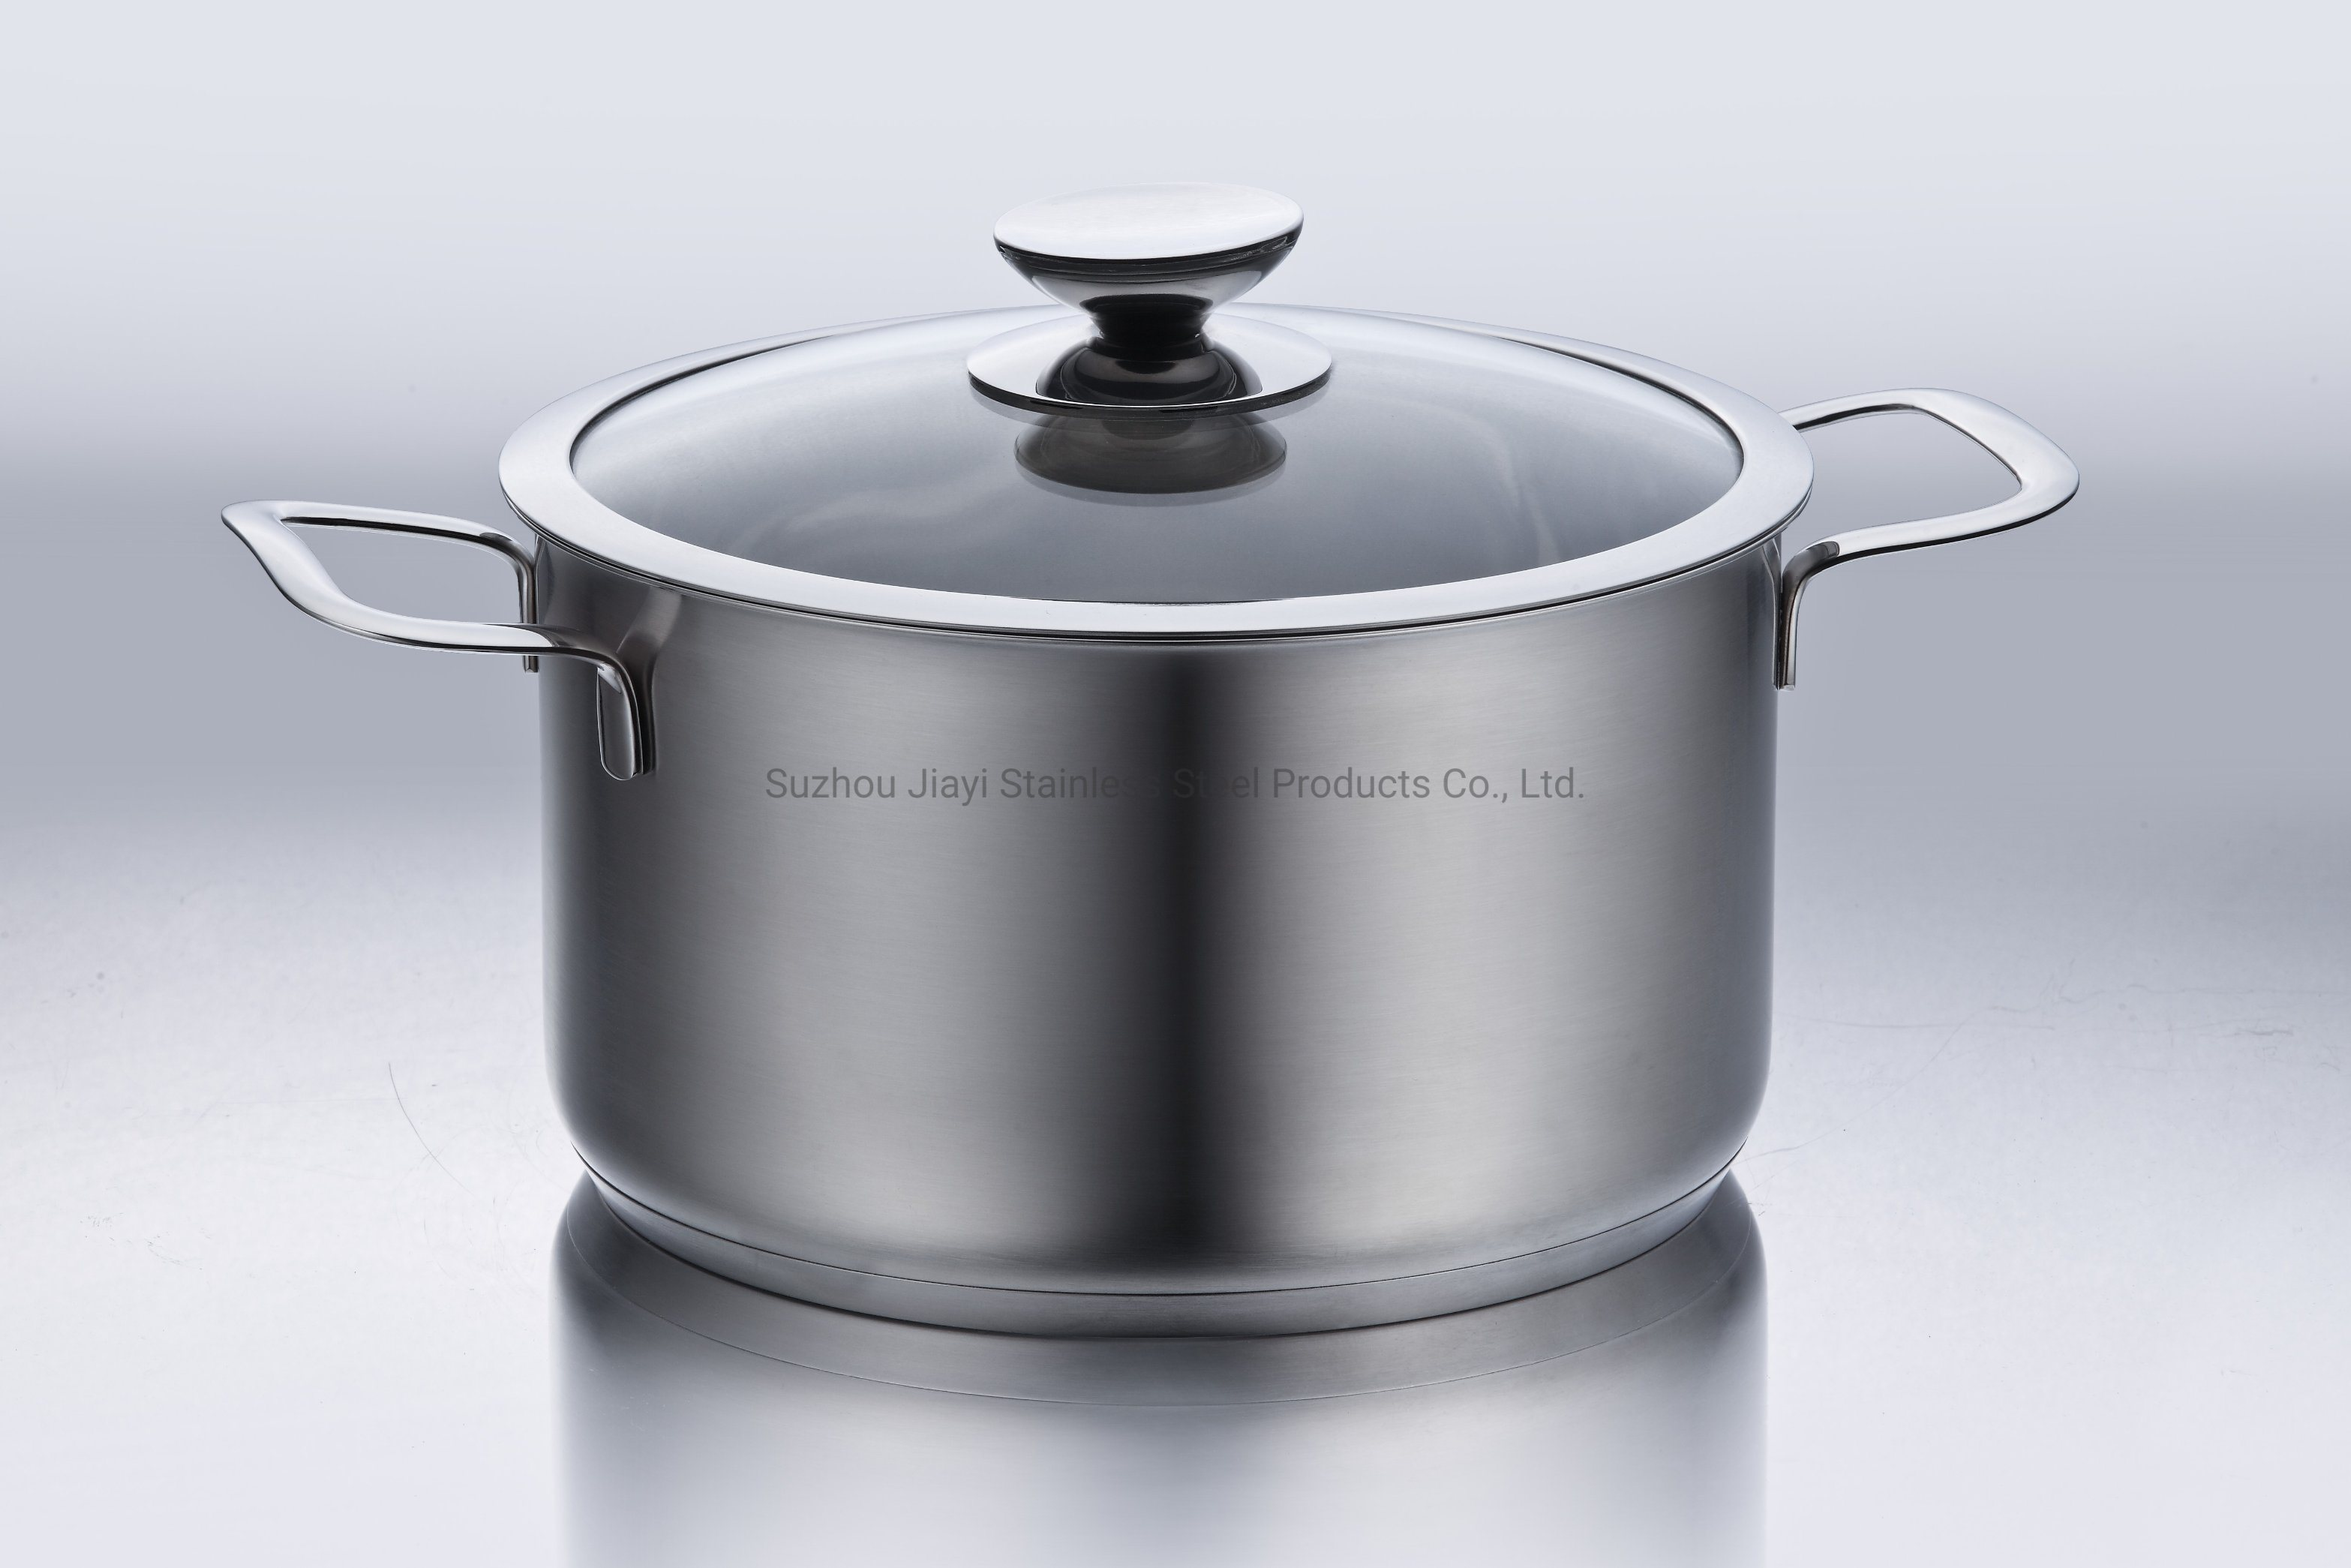 China Economic Stainless Steel Kitchen Food Cookware Pot Saucepan With Lid Stockpot Jy 2011t3 China Pot And Soup Pot Price